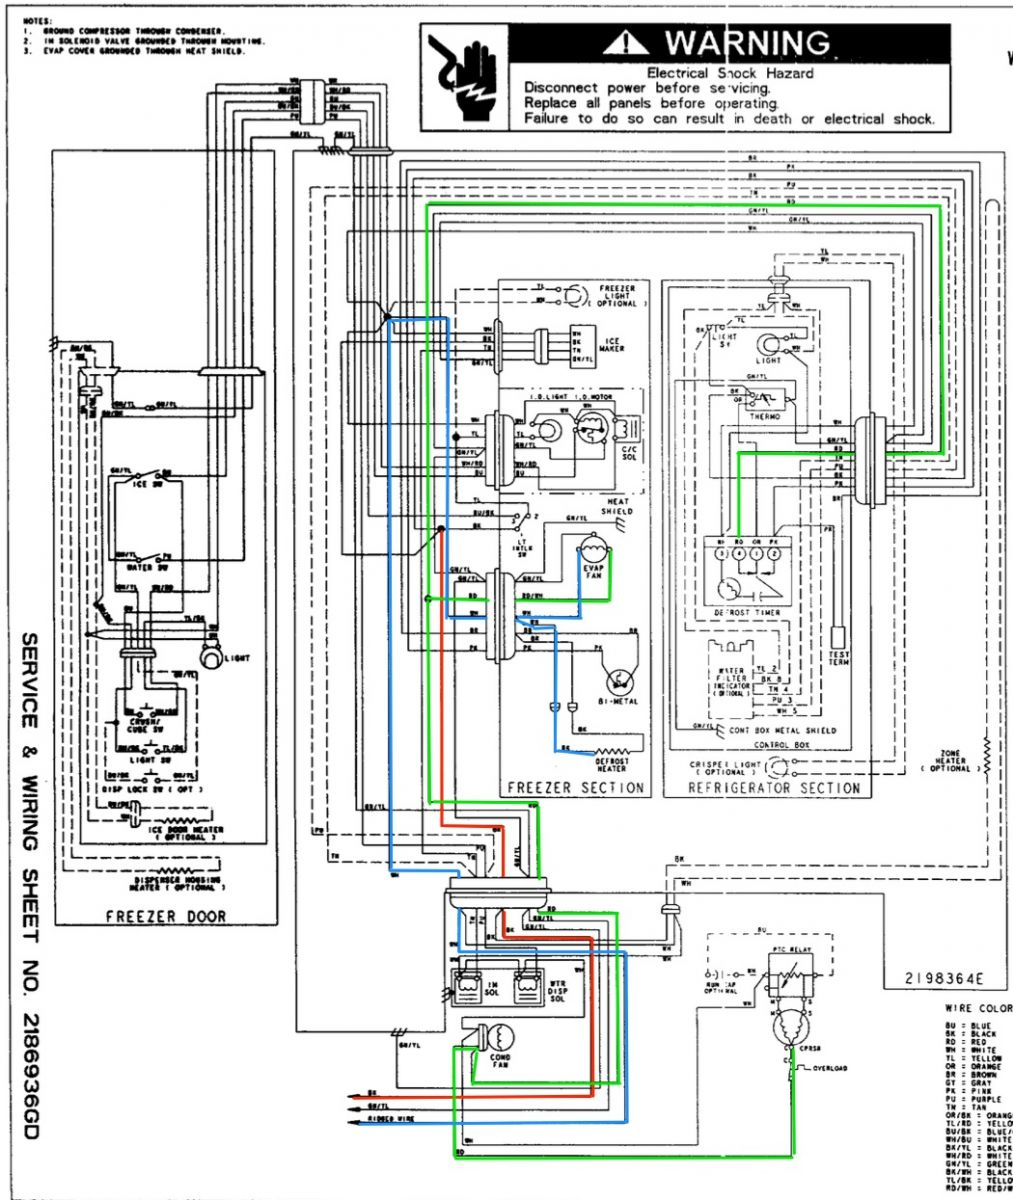 gallery_4_4_346879 whirlpool ed25rfxfw01 refrigerator wiring diagram the wiring diagram refrigeration compressor at soozxer.org